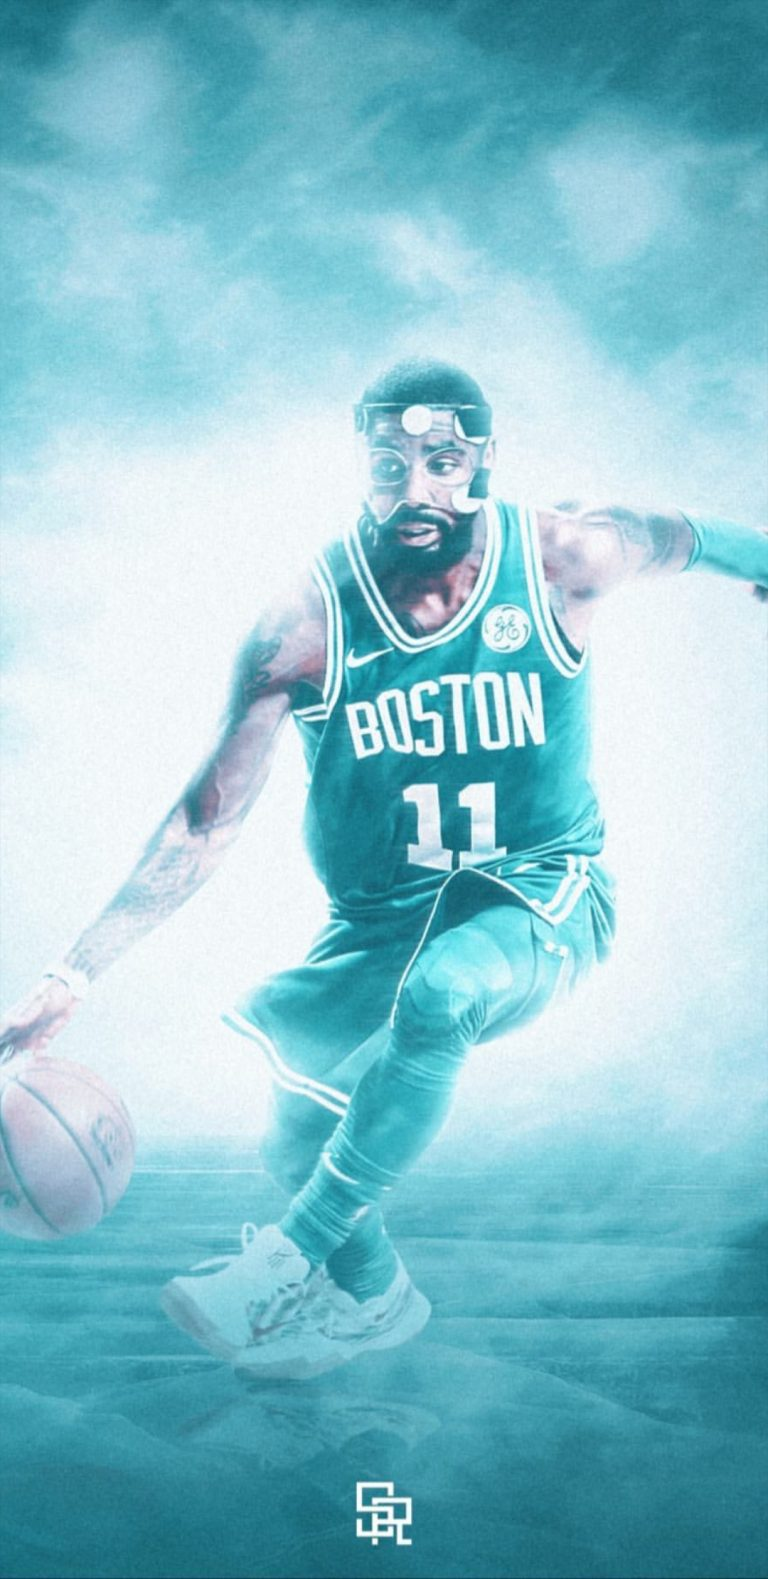 kyrie irving wallpaper 166